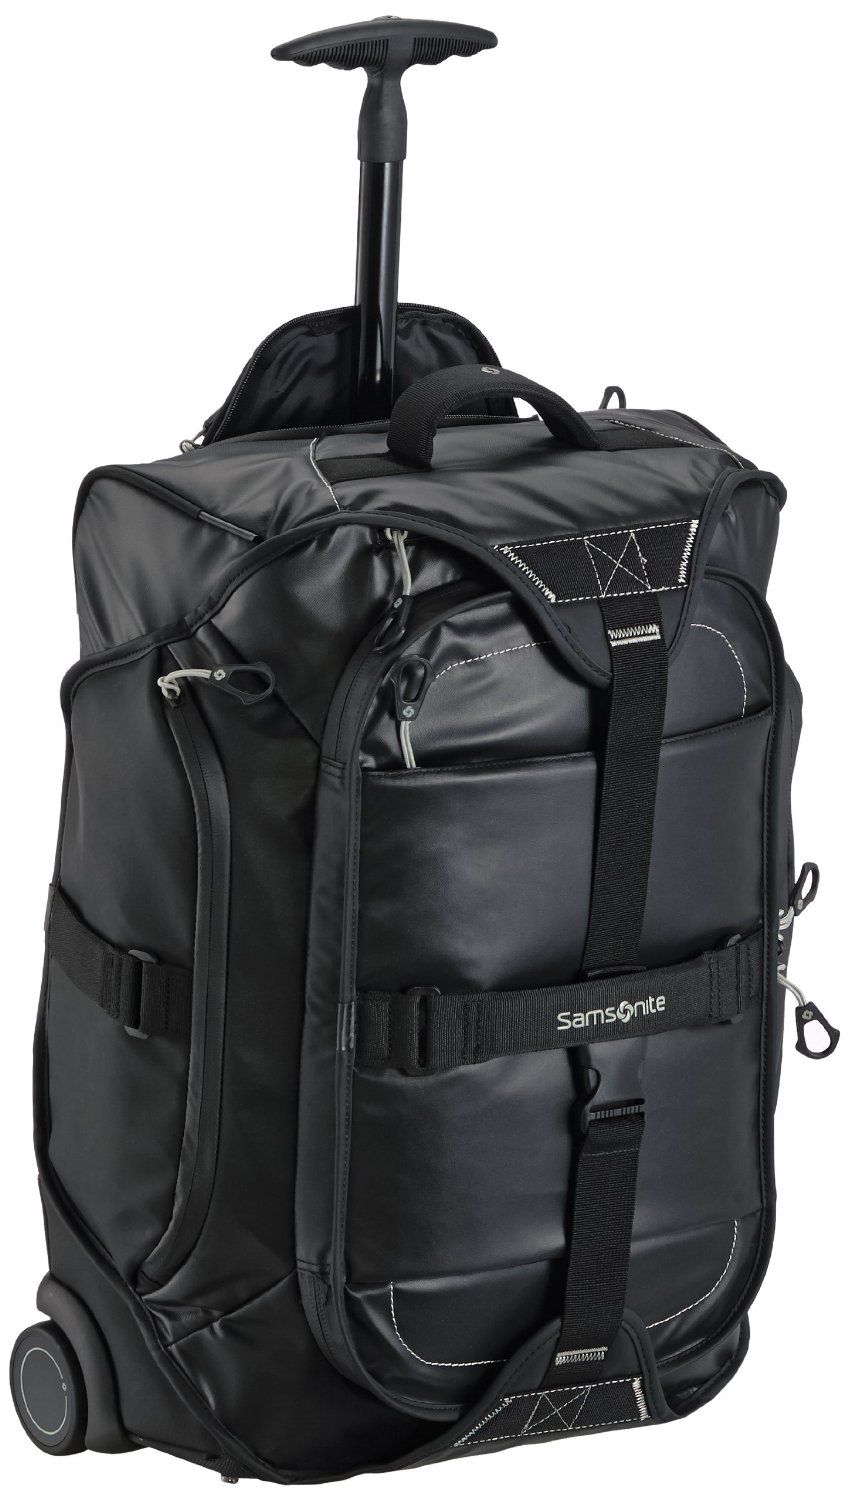 b7d399ce2041 Samsonite Paradiver Duffle On Wheels 55CM Backpack -Black - IATA Cabin  Size  Amazon.co.uk  Luggage